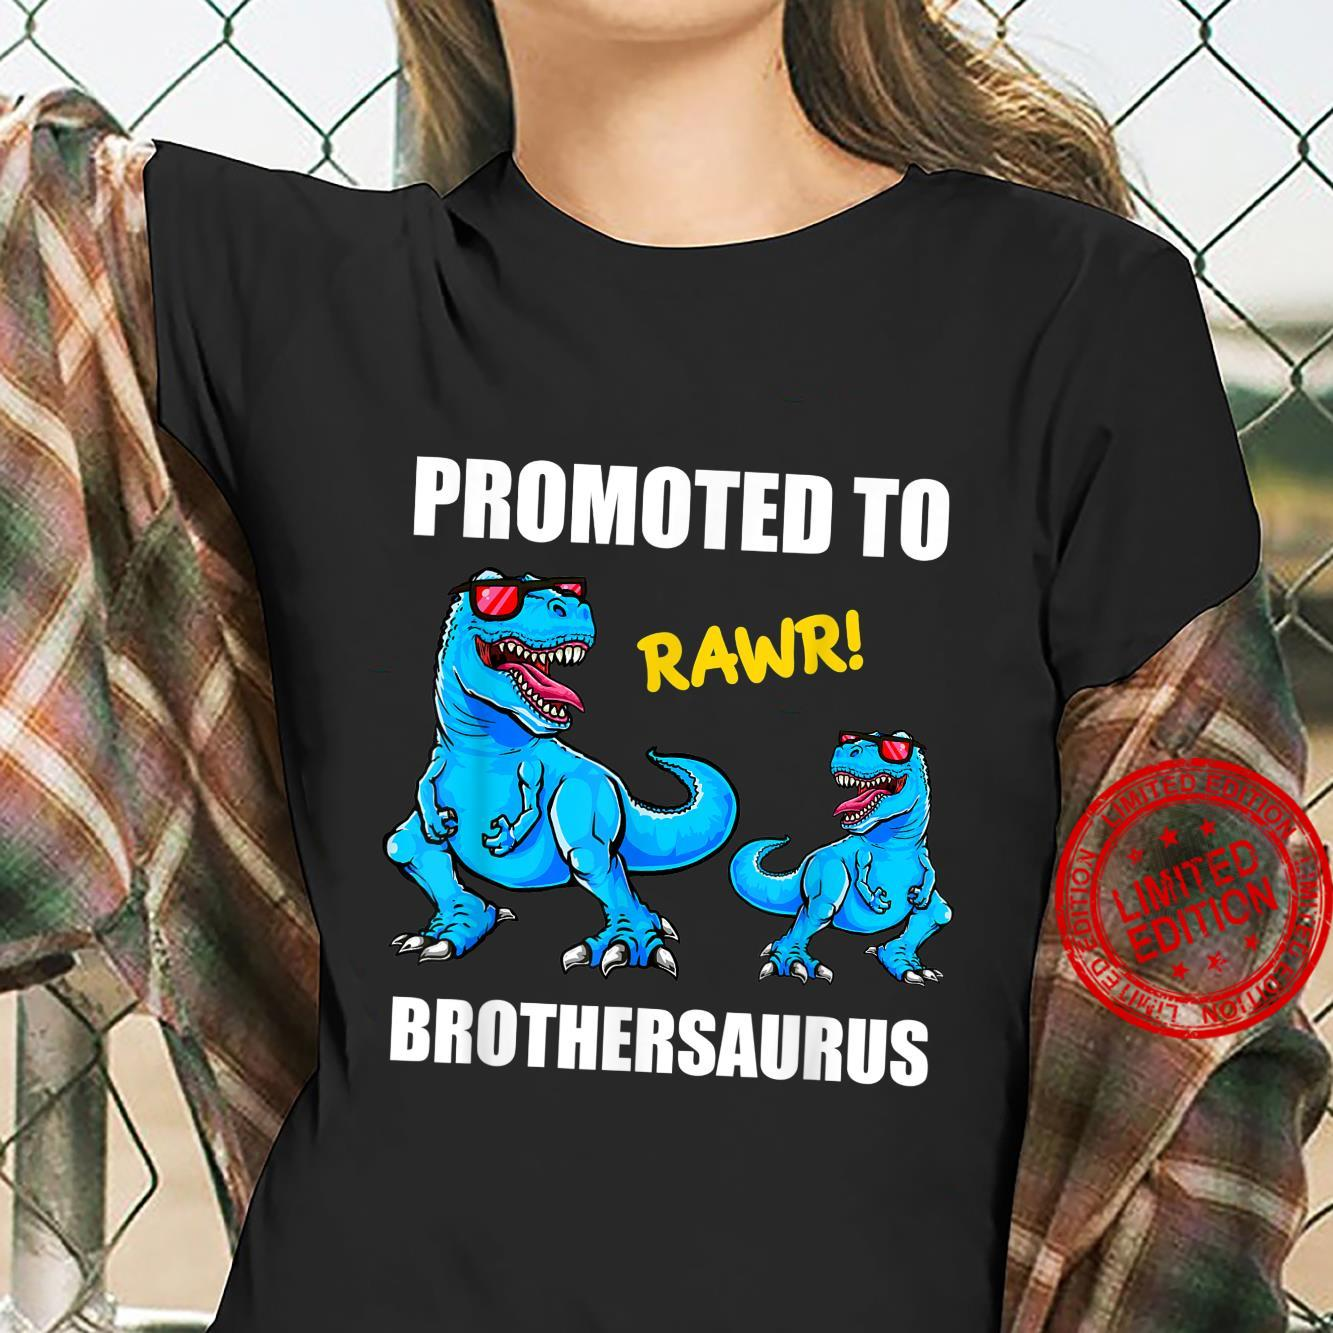 Promoted To Brother 2022 Shirt, TRex Promoted Brother 2022 Shirt ladies tee